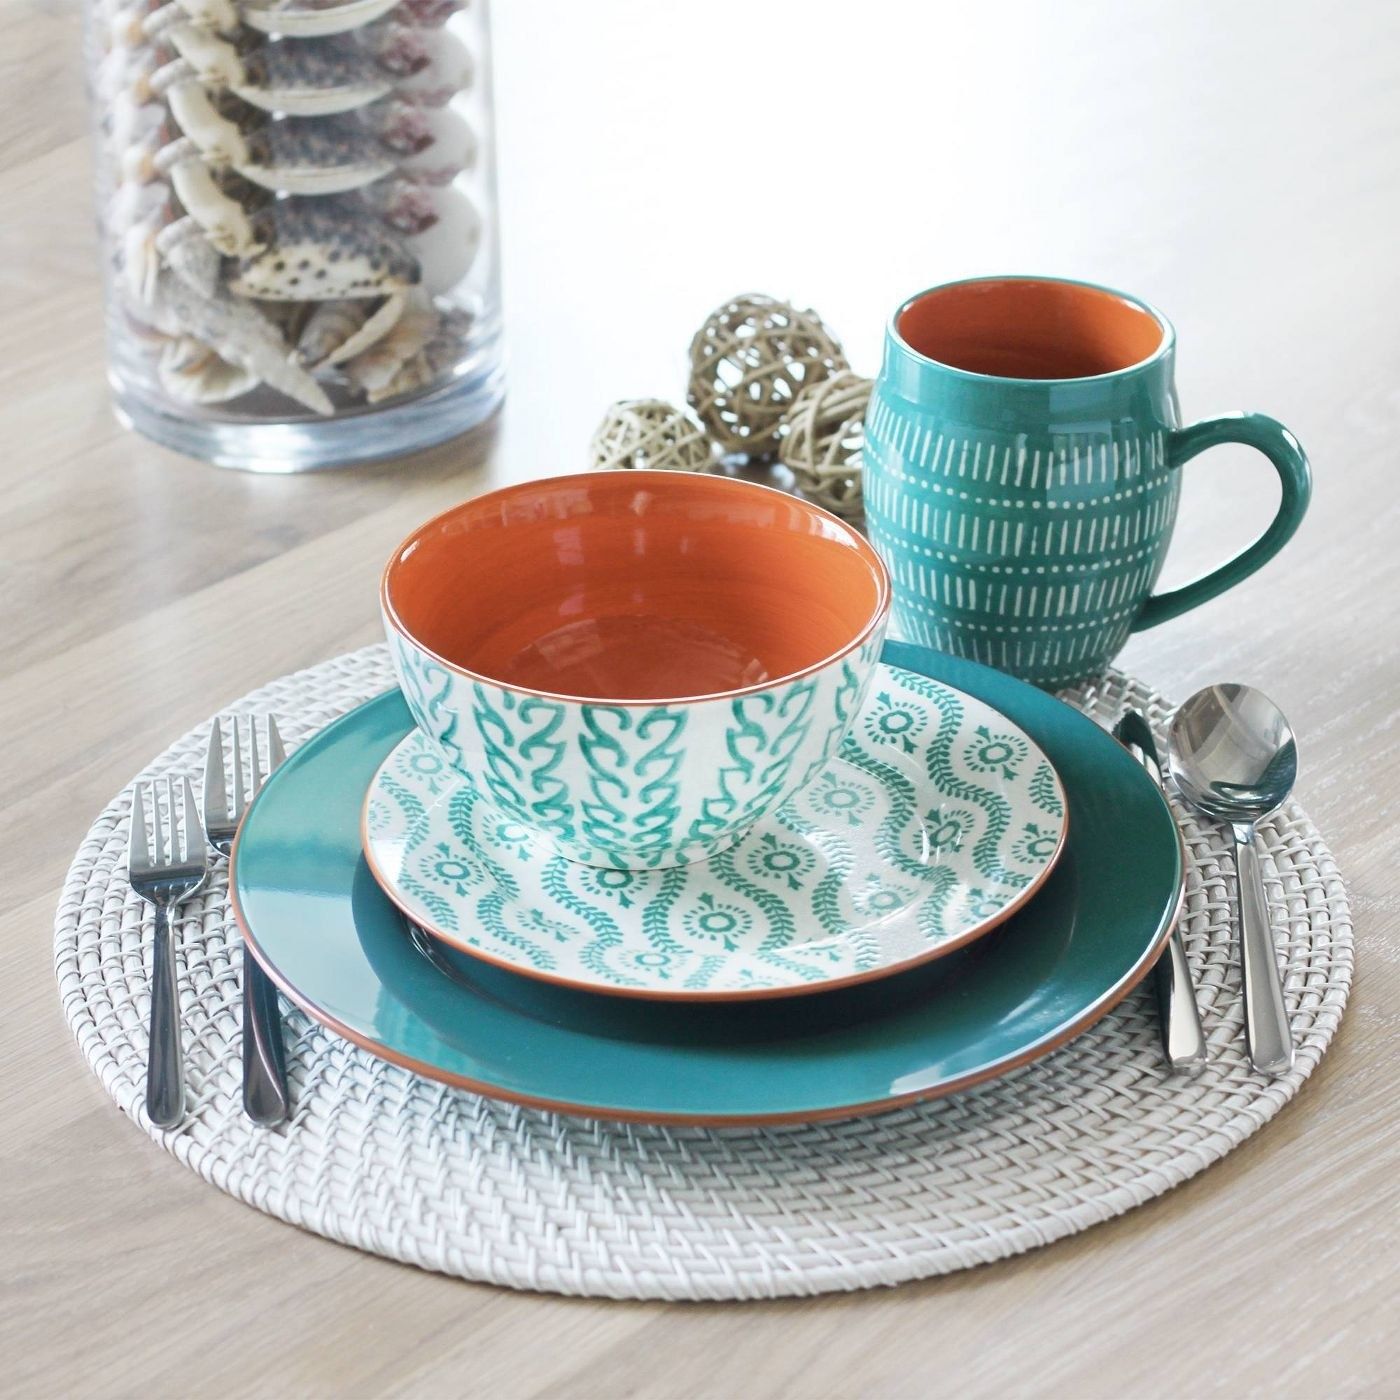 The dinnerware set on a table